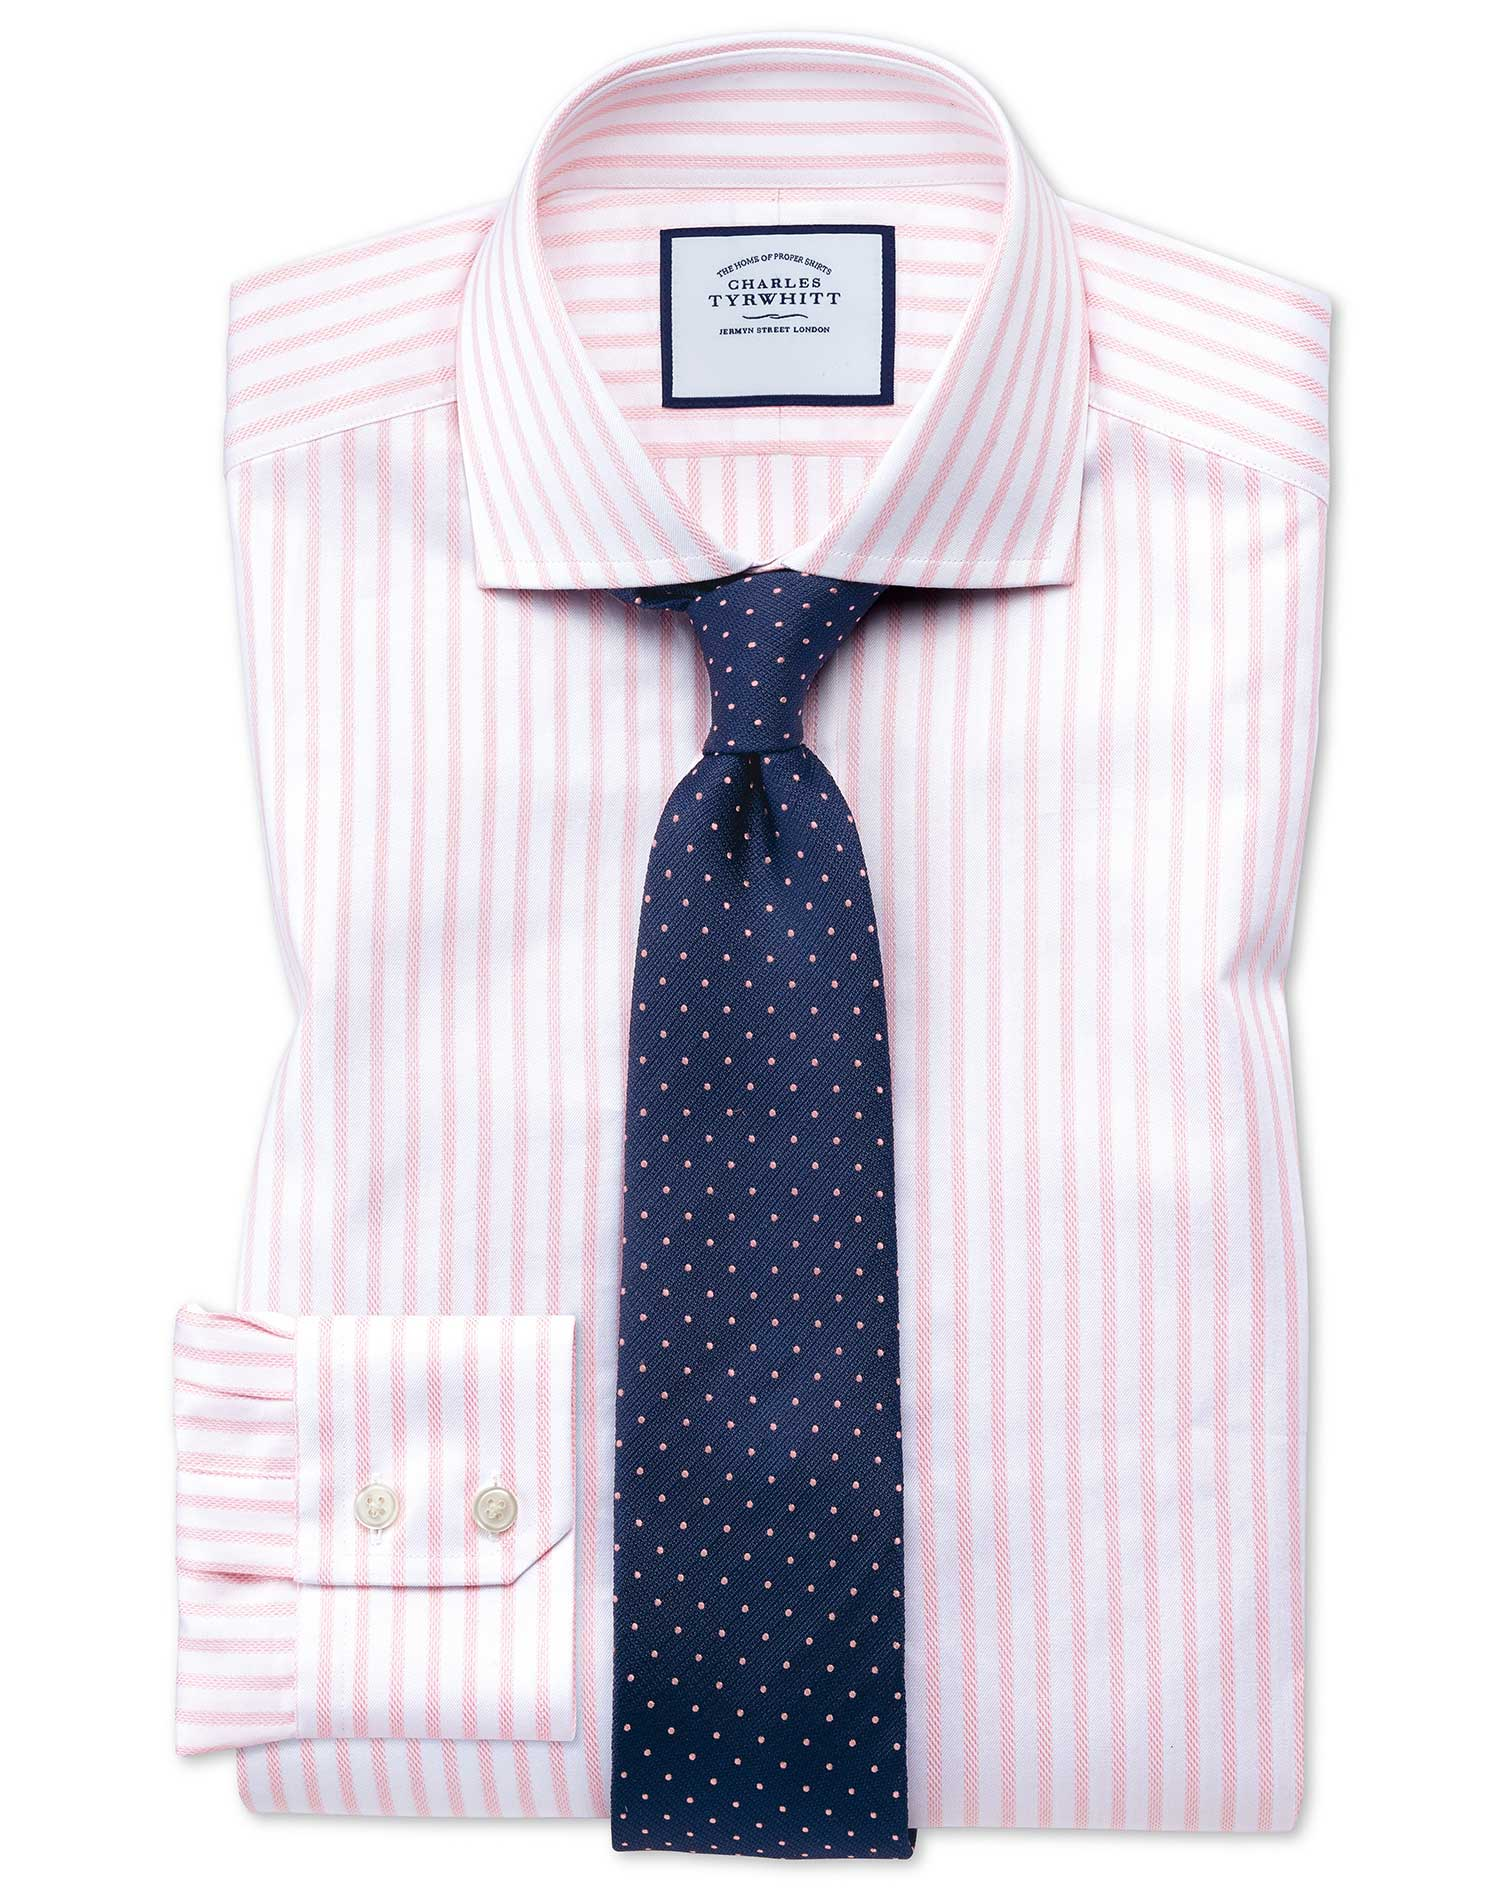 Extra Slim Fit Cutaway Textured Stripe Pink and White Cotton Formal Shirt Single Cuff Size 15.5/33 b